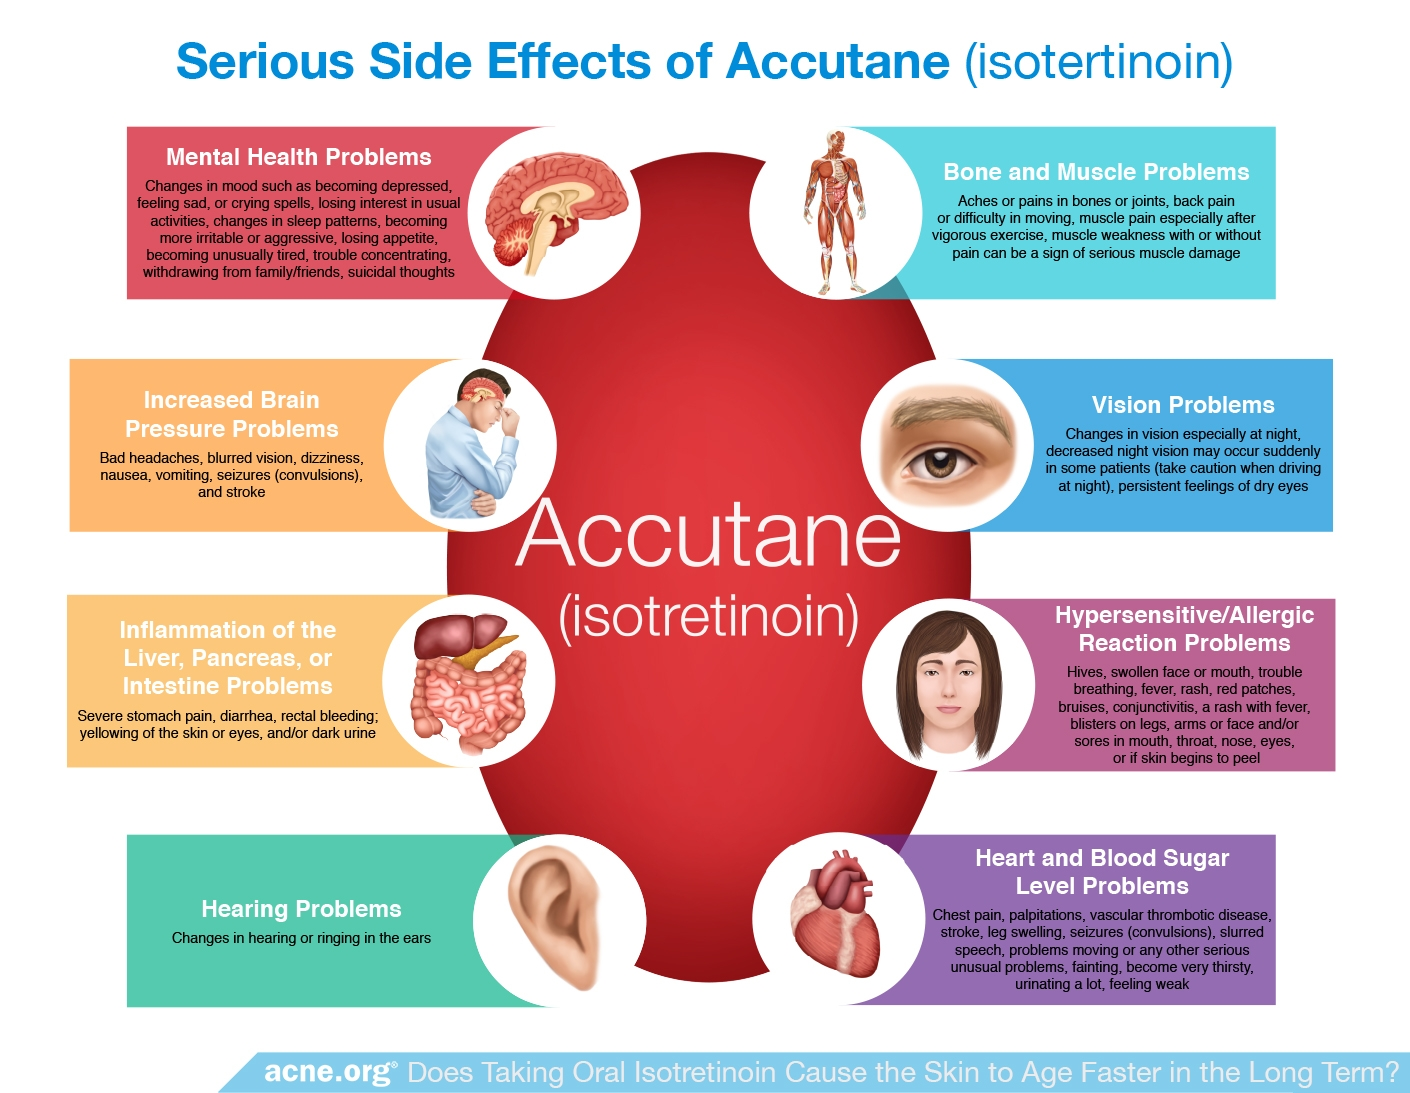 Serious Side Effects of Accutane (Isotretinoin)